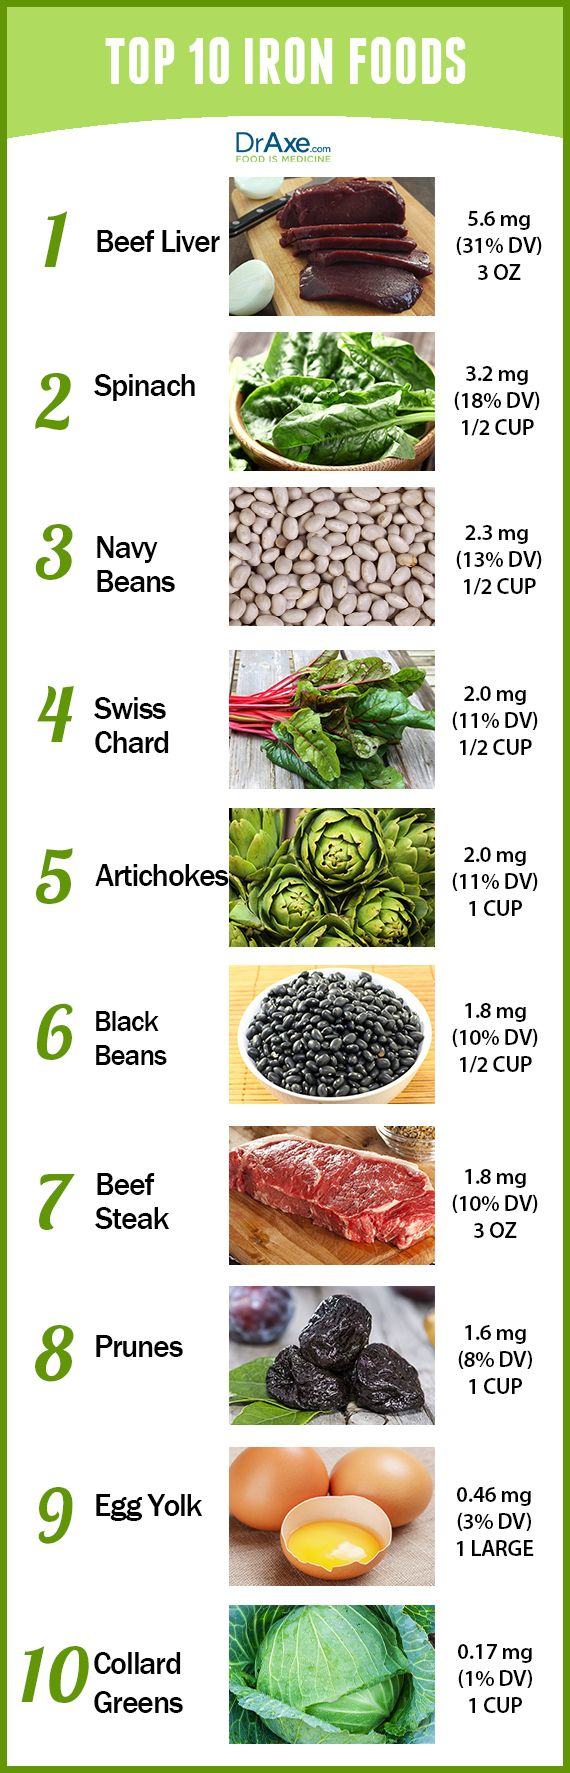 TOP 10 IRON RICH FOODS - The benefits of iron include healthy hair and skin, increased energy, and a healthy pregnancy. Try these Top 10 Iron Rich Foods to get your daily dose! - http://draxe.com/top-10-iron-rich-foods/